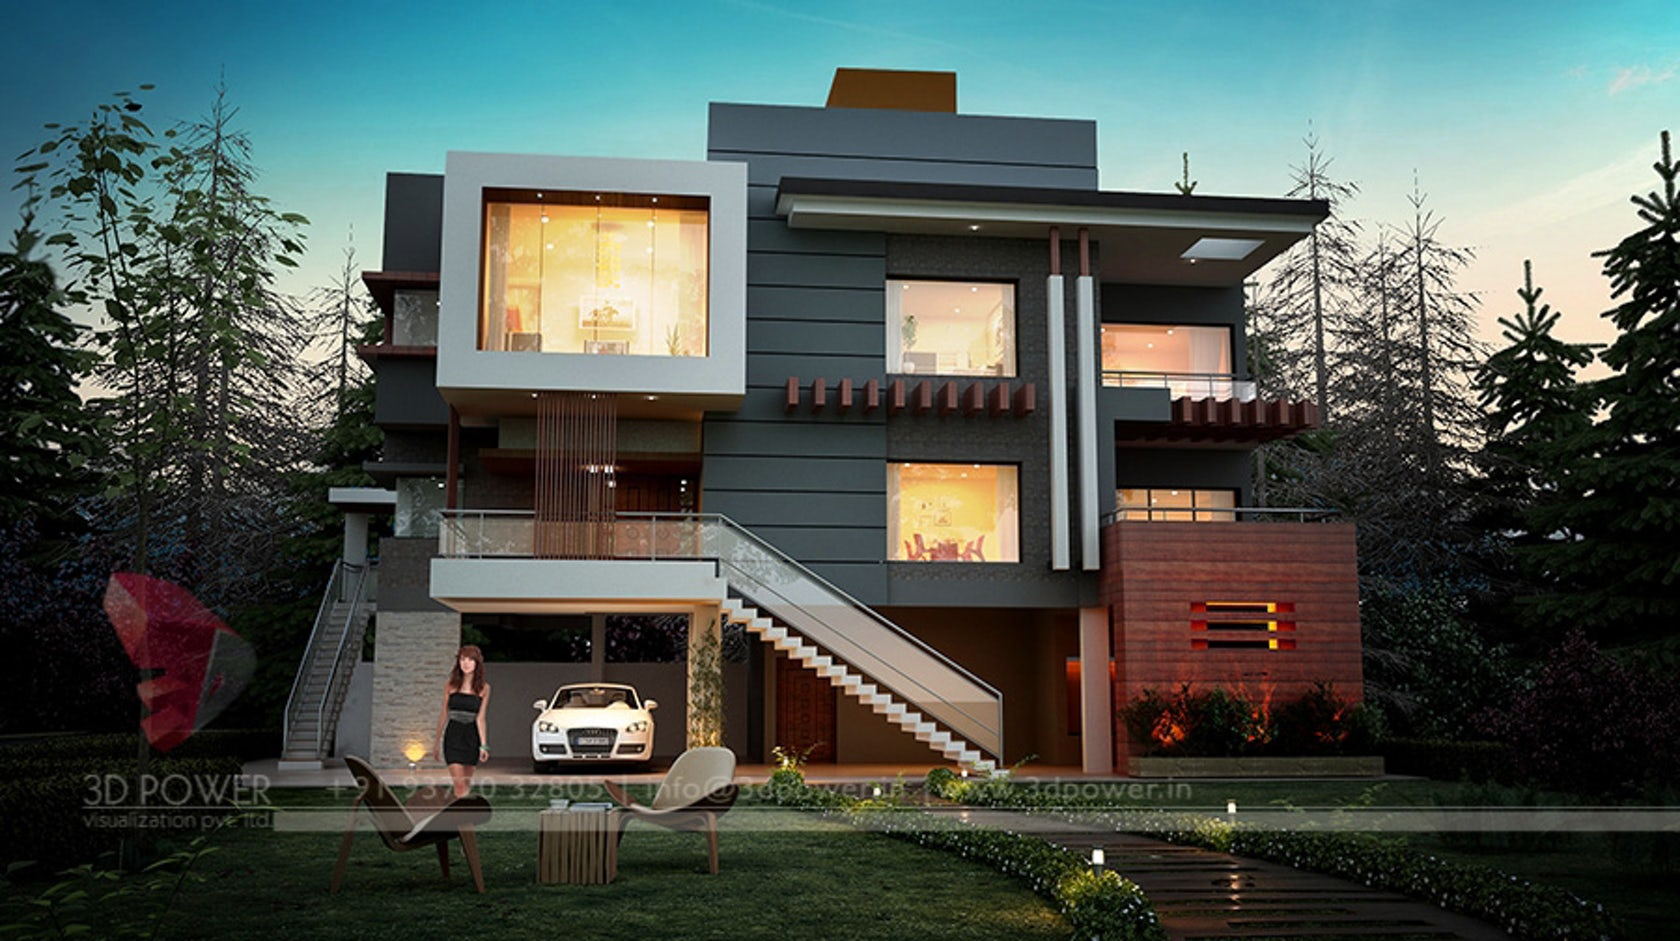 Luxurious 3D Modern Bungalow Rendering Elevation Design By 3D